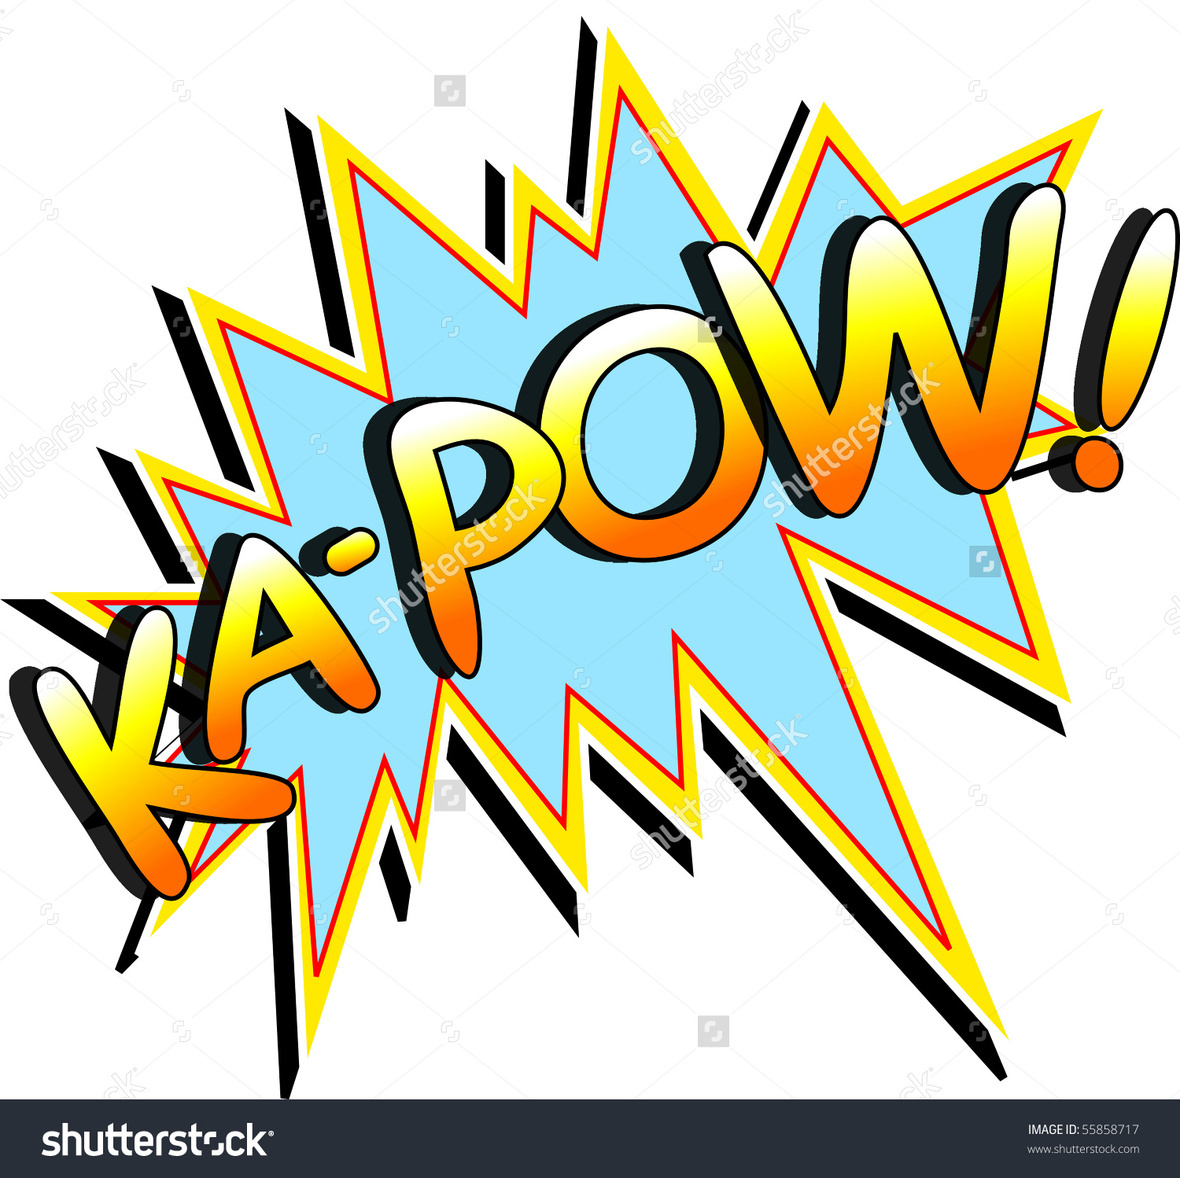 stock-photo-comic-book-style-kapow-55858717